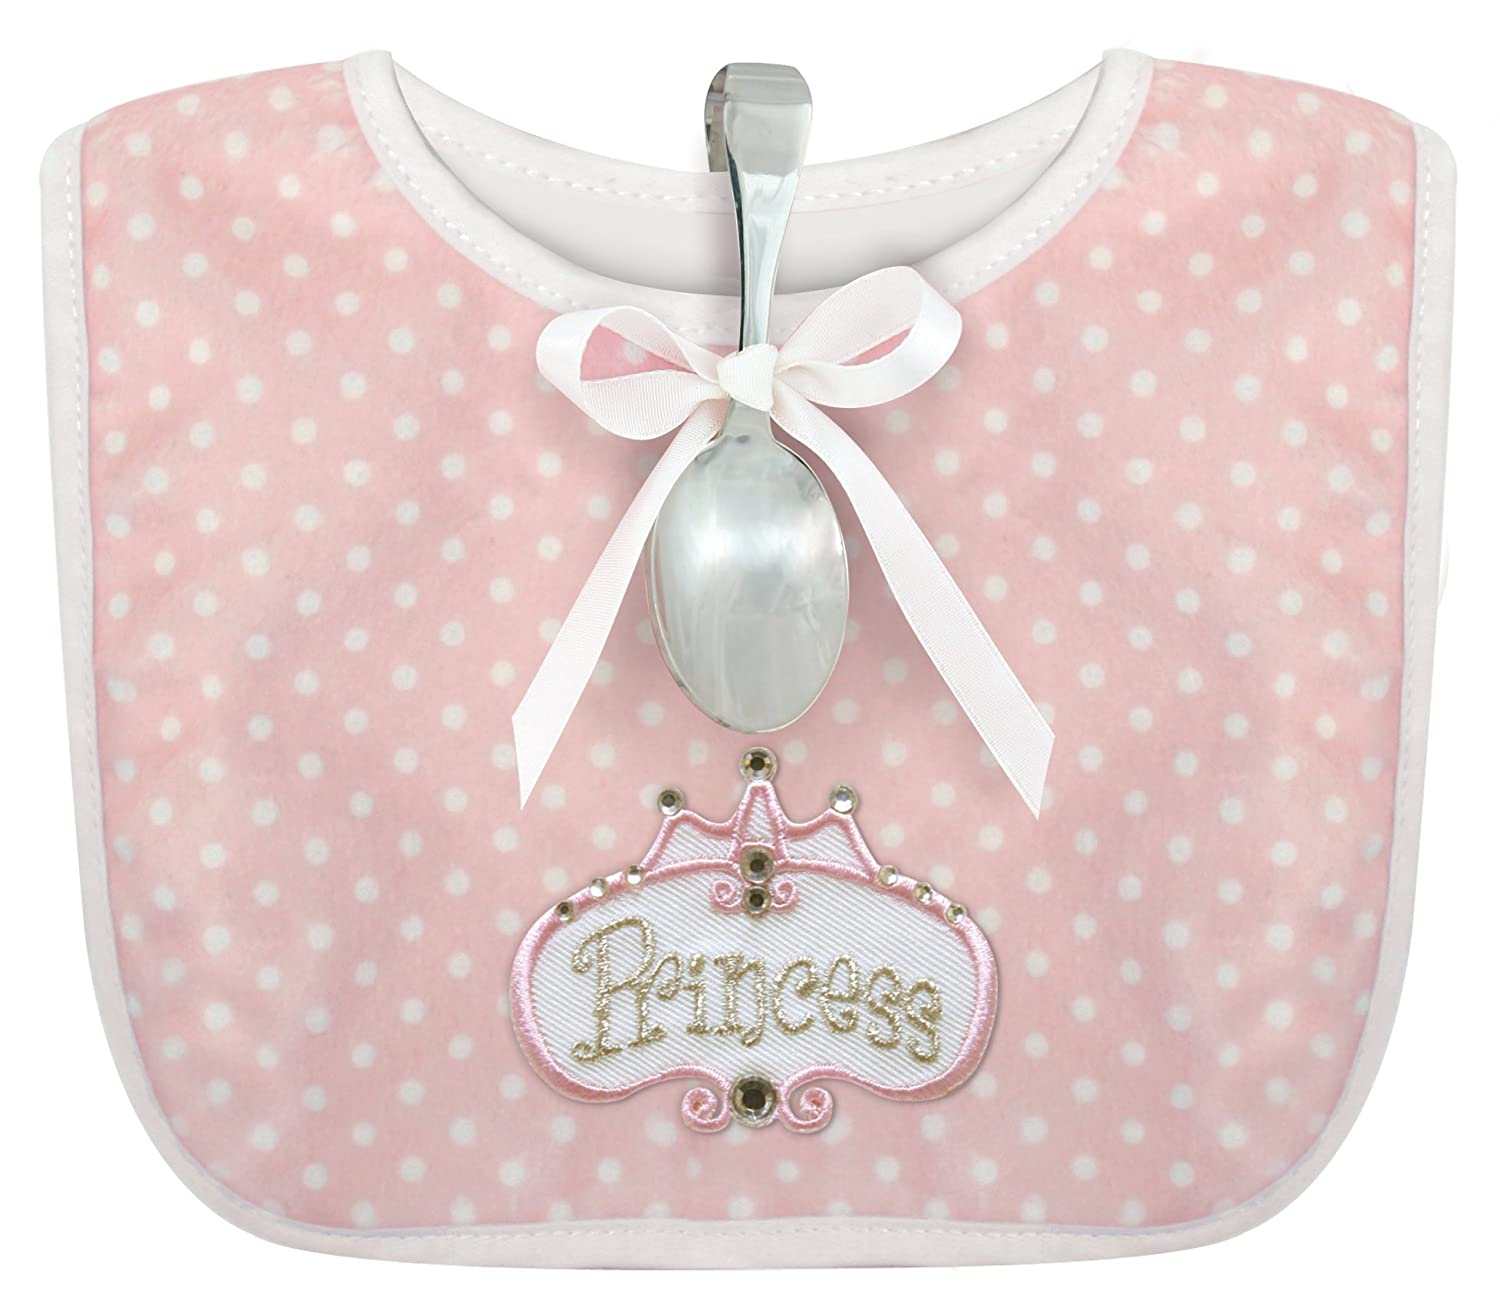 Stephan Baby Infant Girl Polka Dot Bib and Silver Plated Bent-Handled Spoon Gift Set, Little Princess 824503